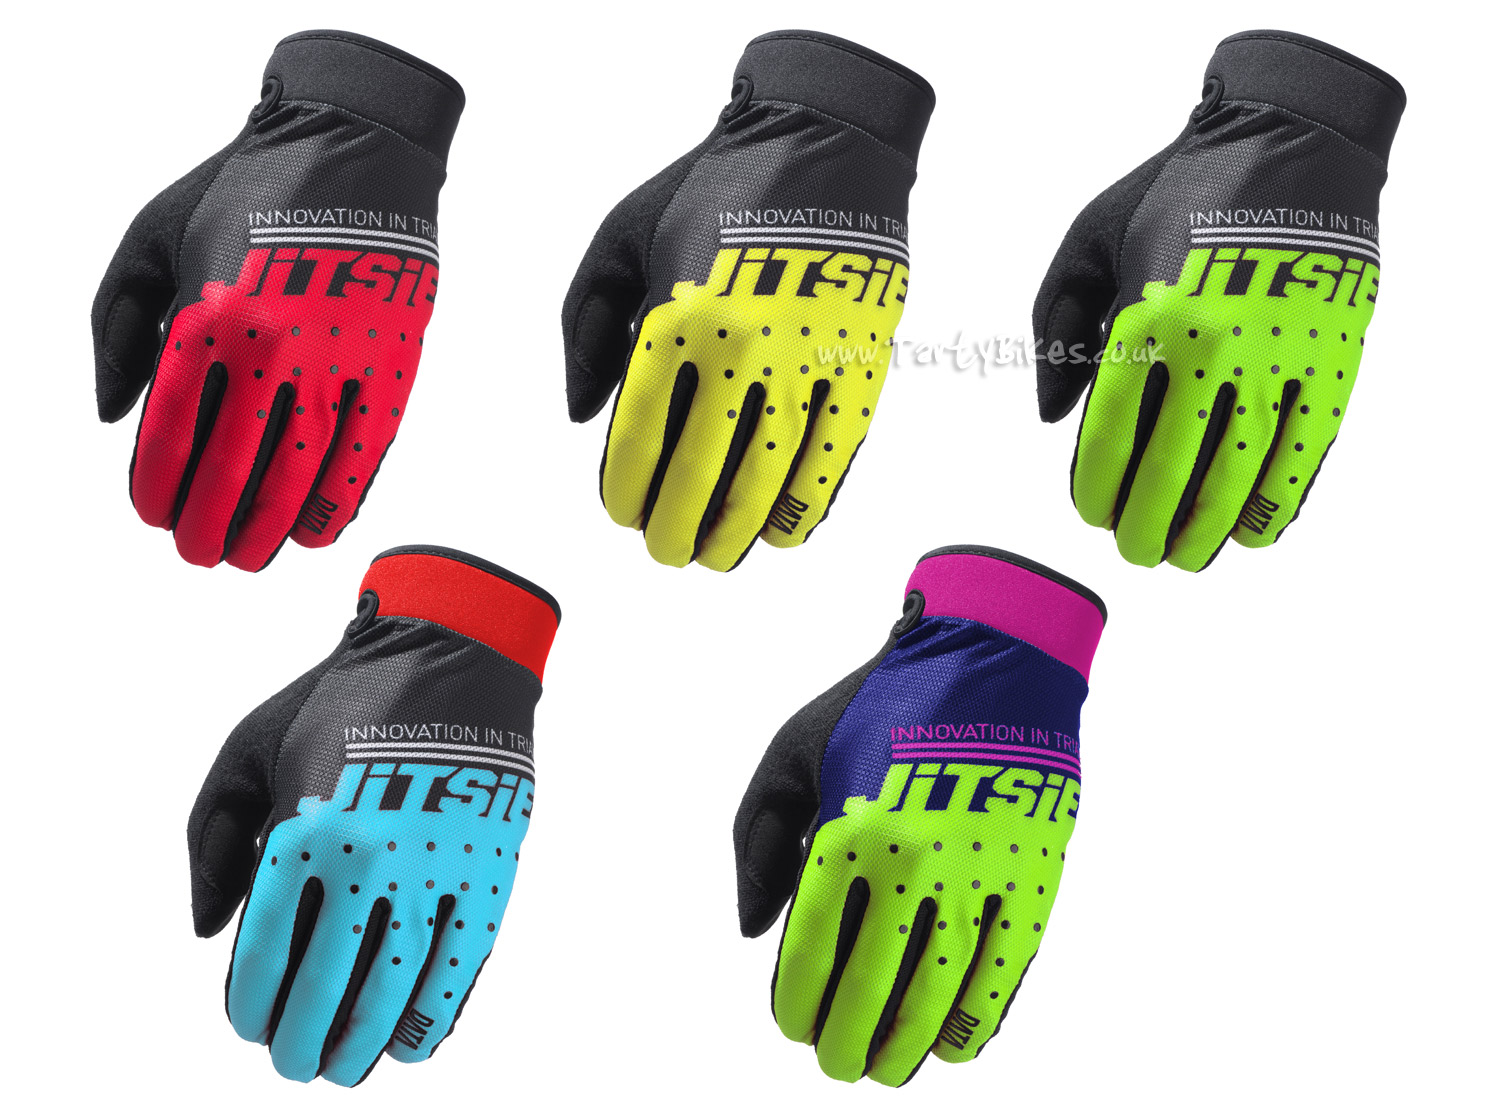 Jitsie Data Gloves